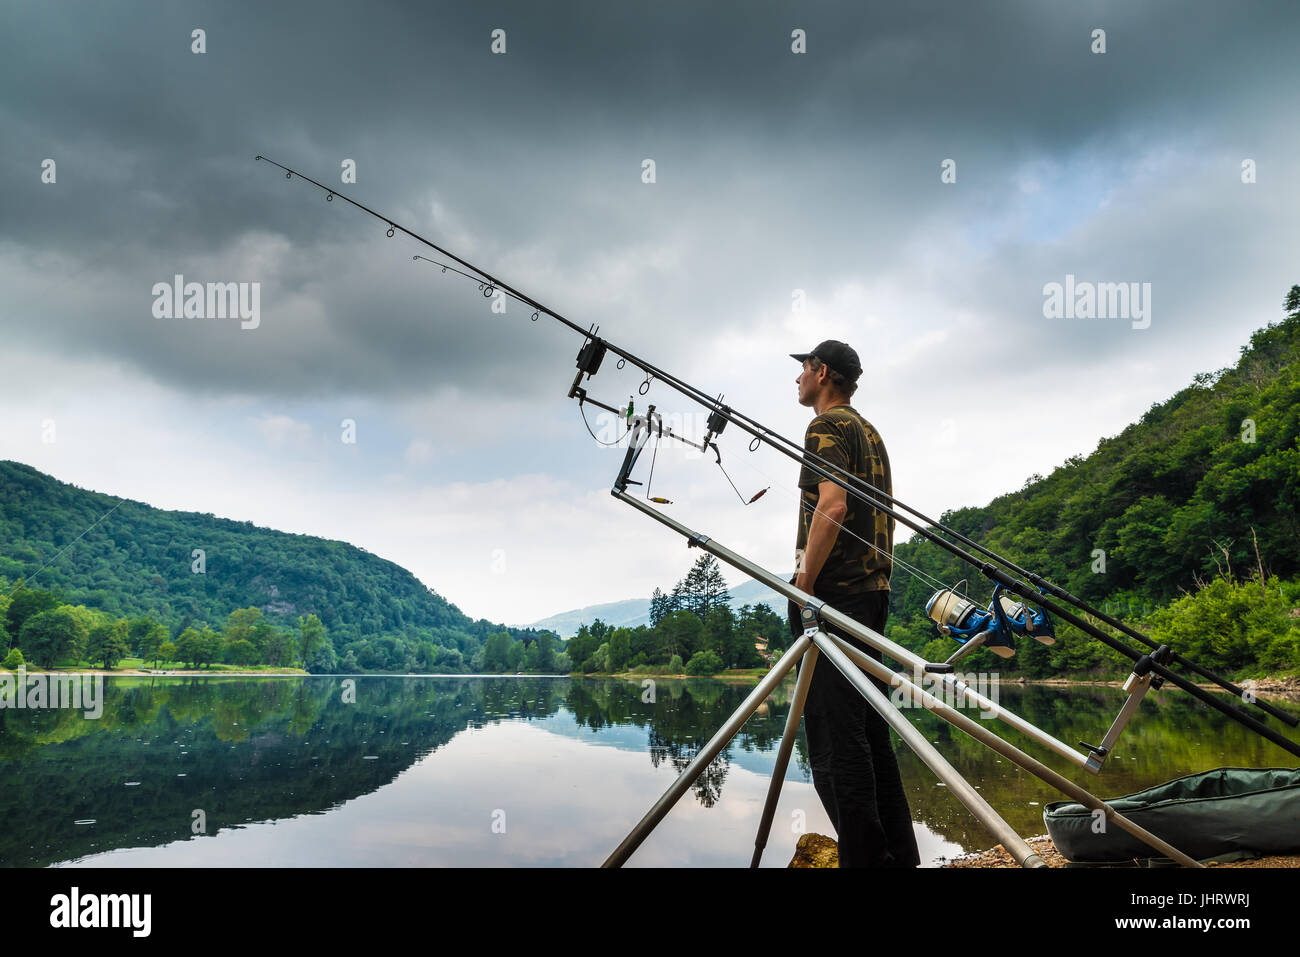 Fishing adventures, carp fishing. Angler on the shore of a lake in a morning with dark sky and grey clouds - Stock Image